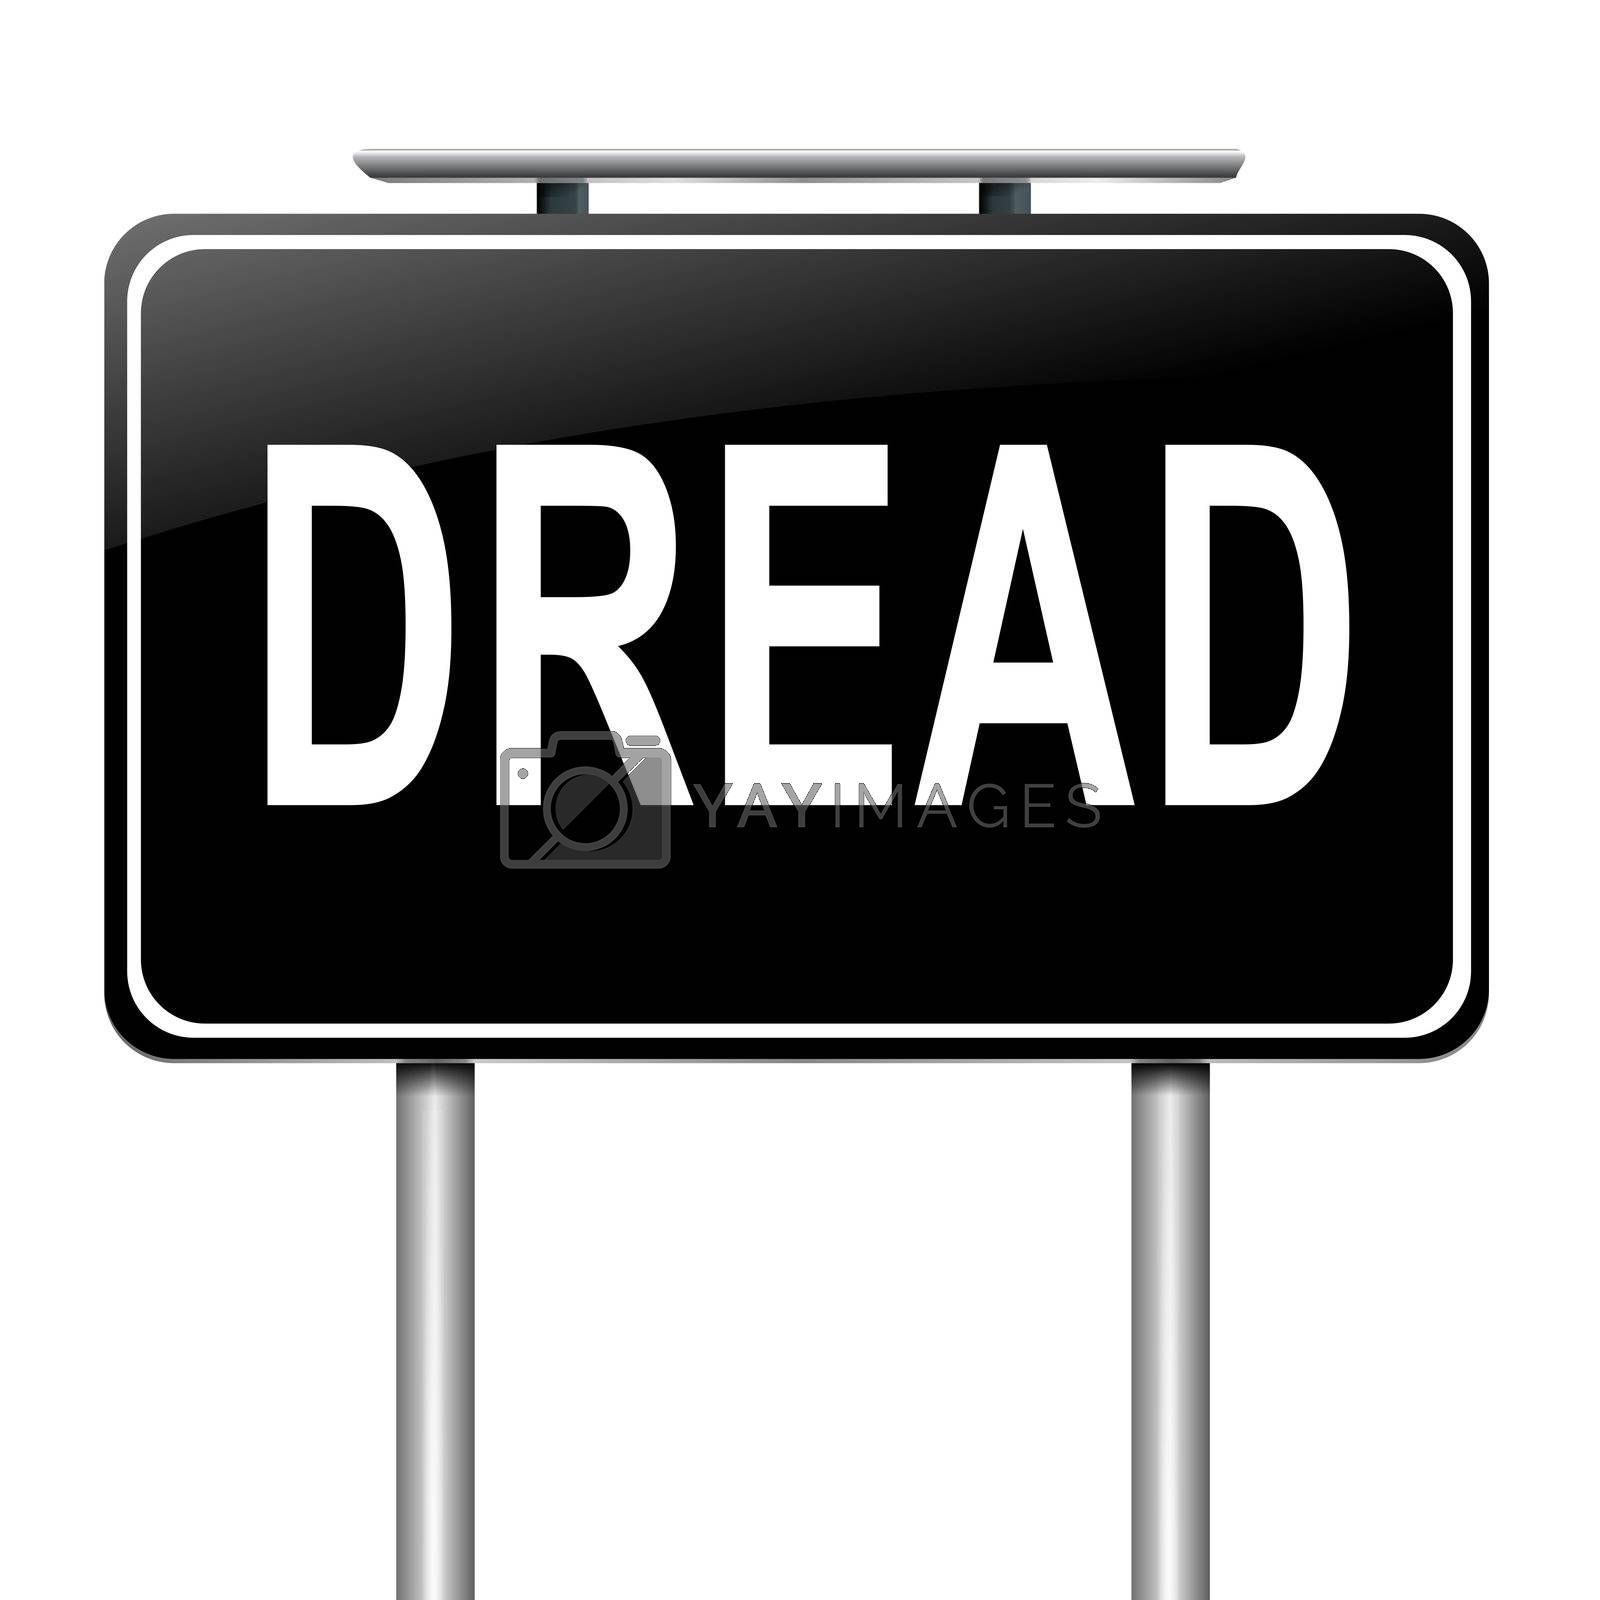 Illustration depicting a sign with a dread concept.